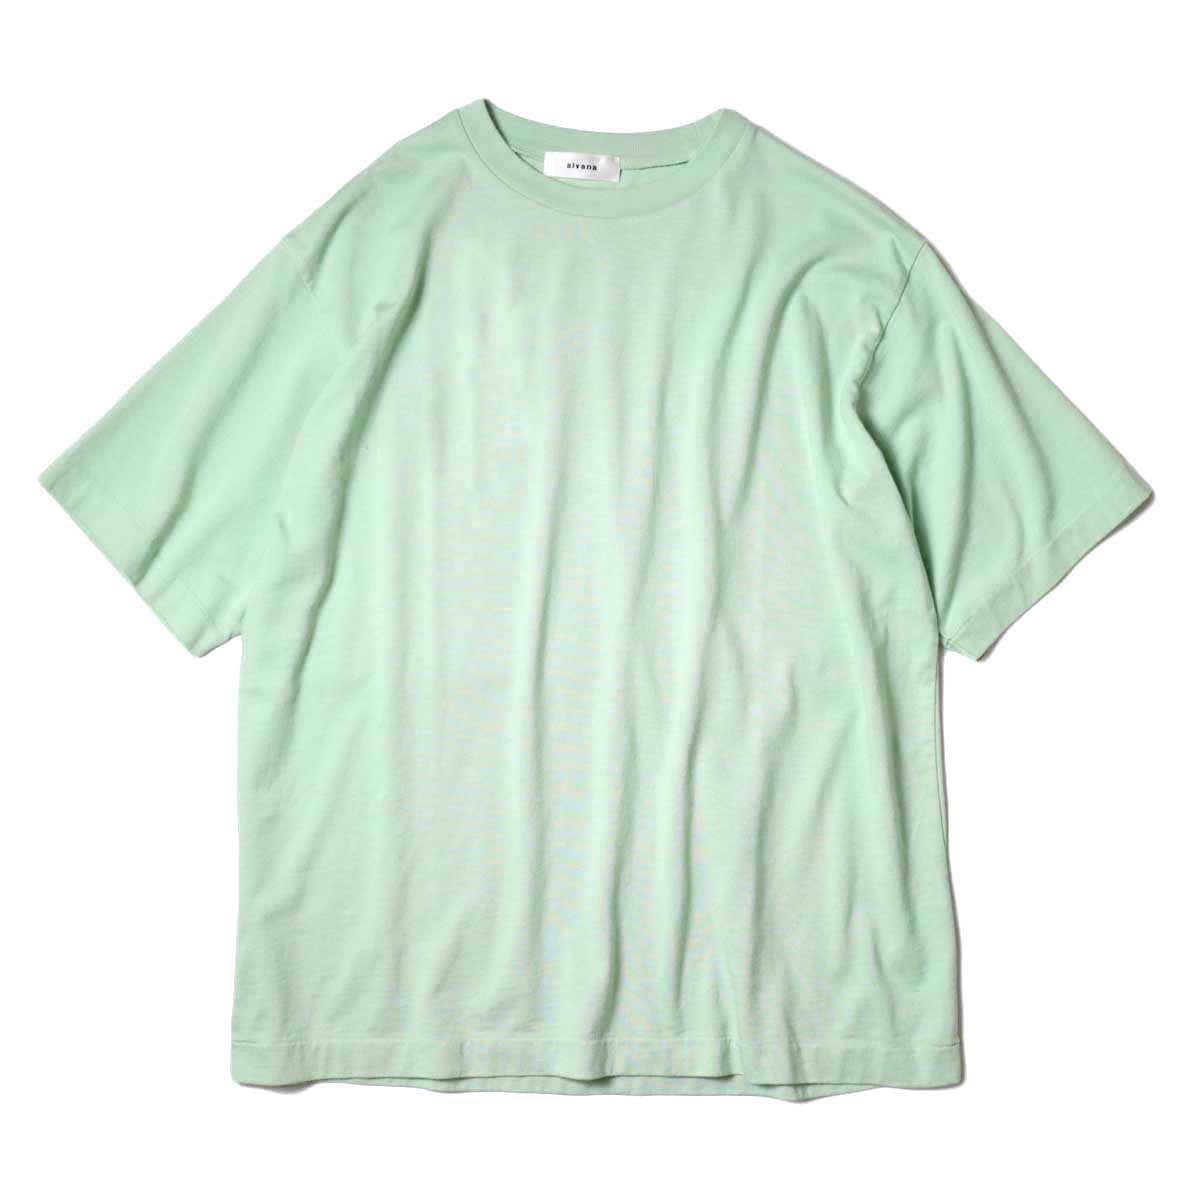 alvana / Dairy Oversize Tee Shirts (Forest Green) 正面